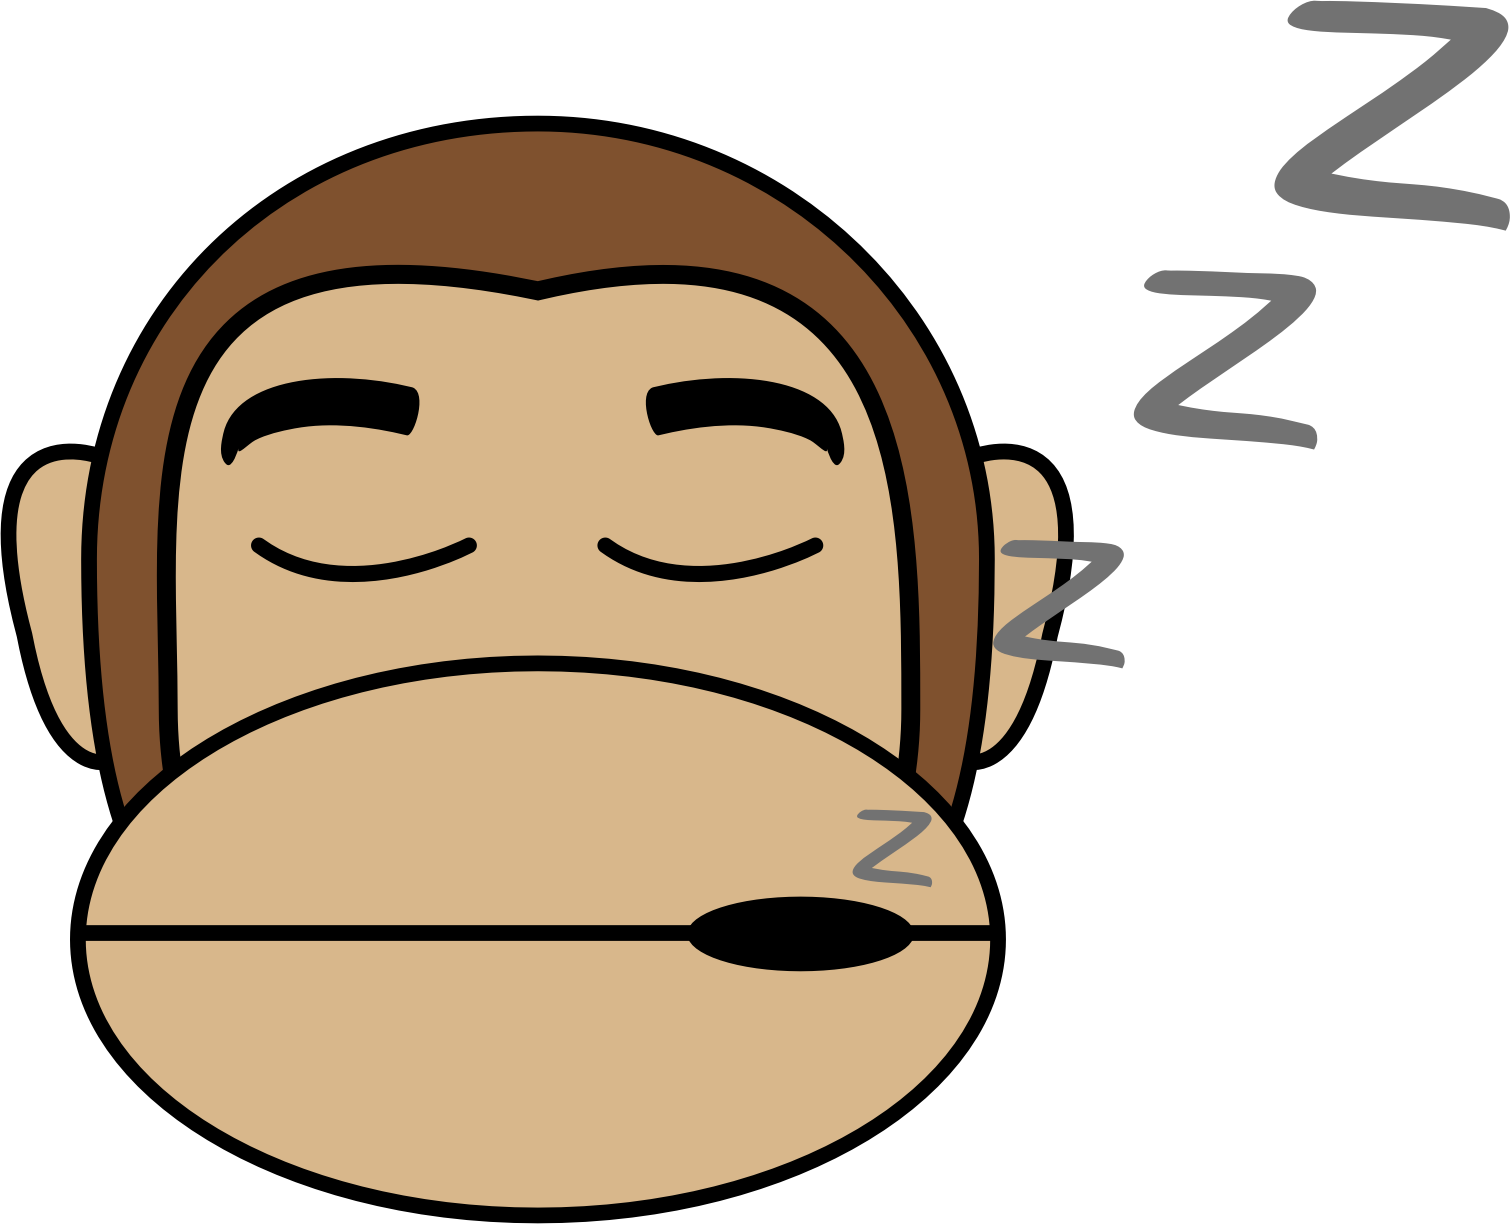 Monkey Emoji - Sleep by buzzbomb